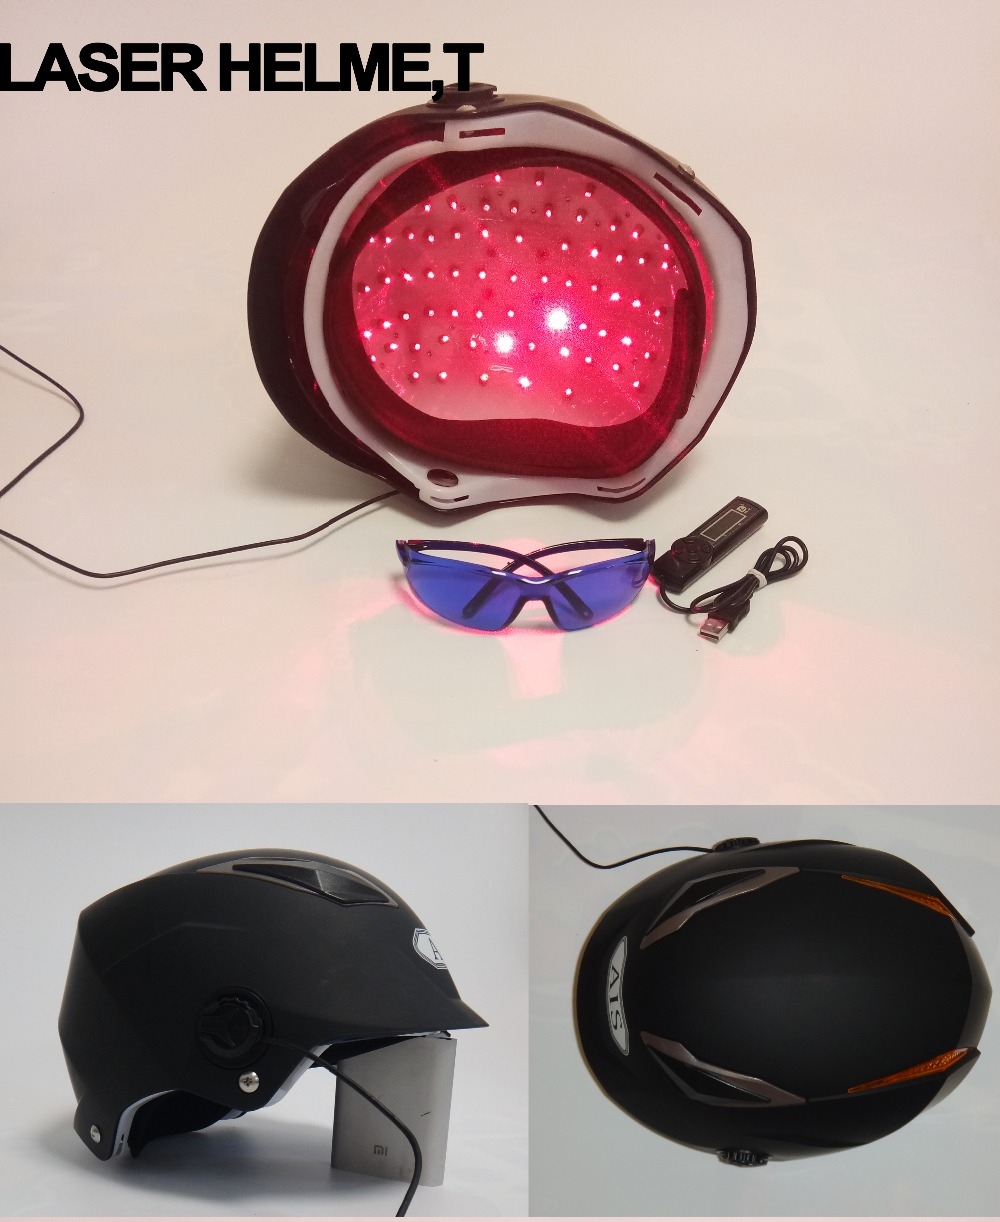 LLLT Therapy for hair loss treatment 650nm 68 diode laser helmet hair regrowth lllt hair therapy laser hat for hair regrowth hair helmet laser for anti hair loss solution